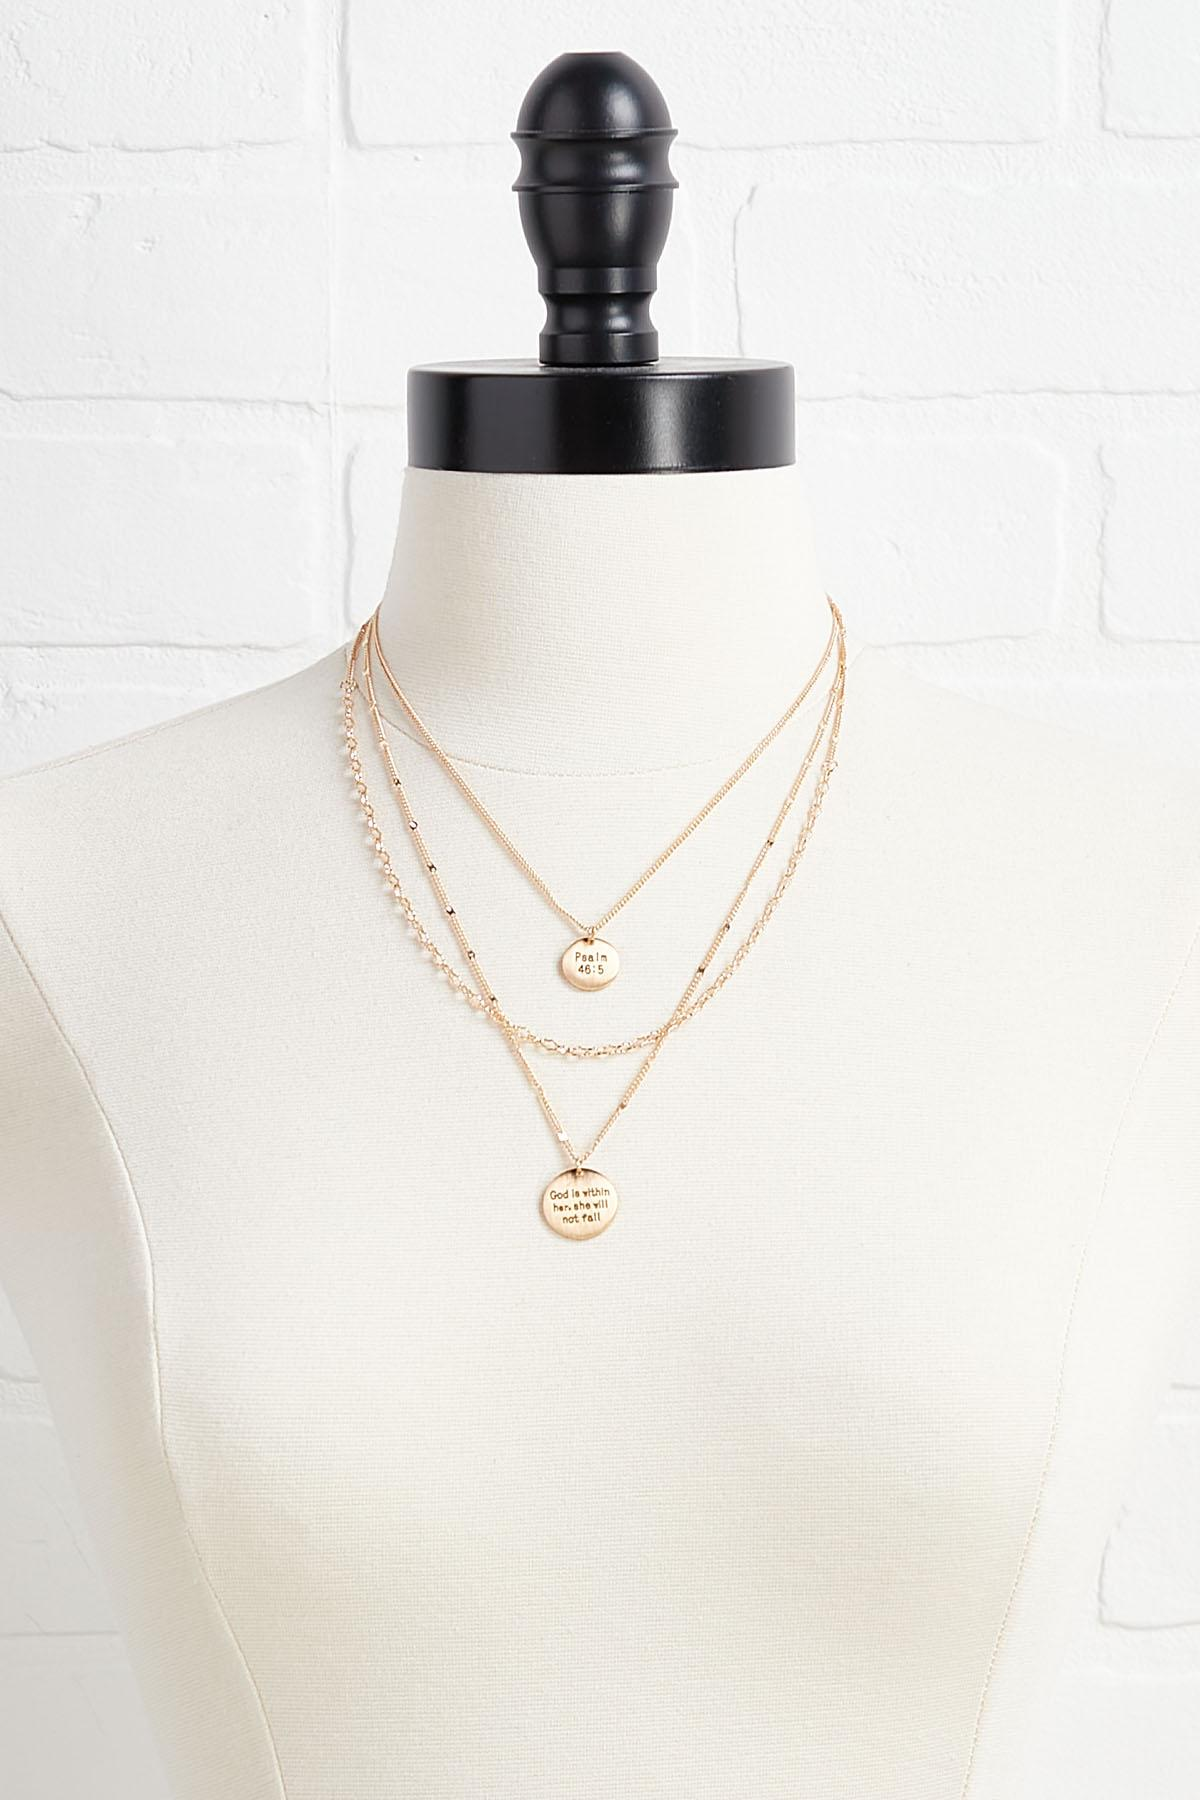 God Is Within Her Necklace Set